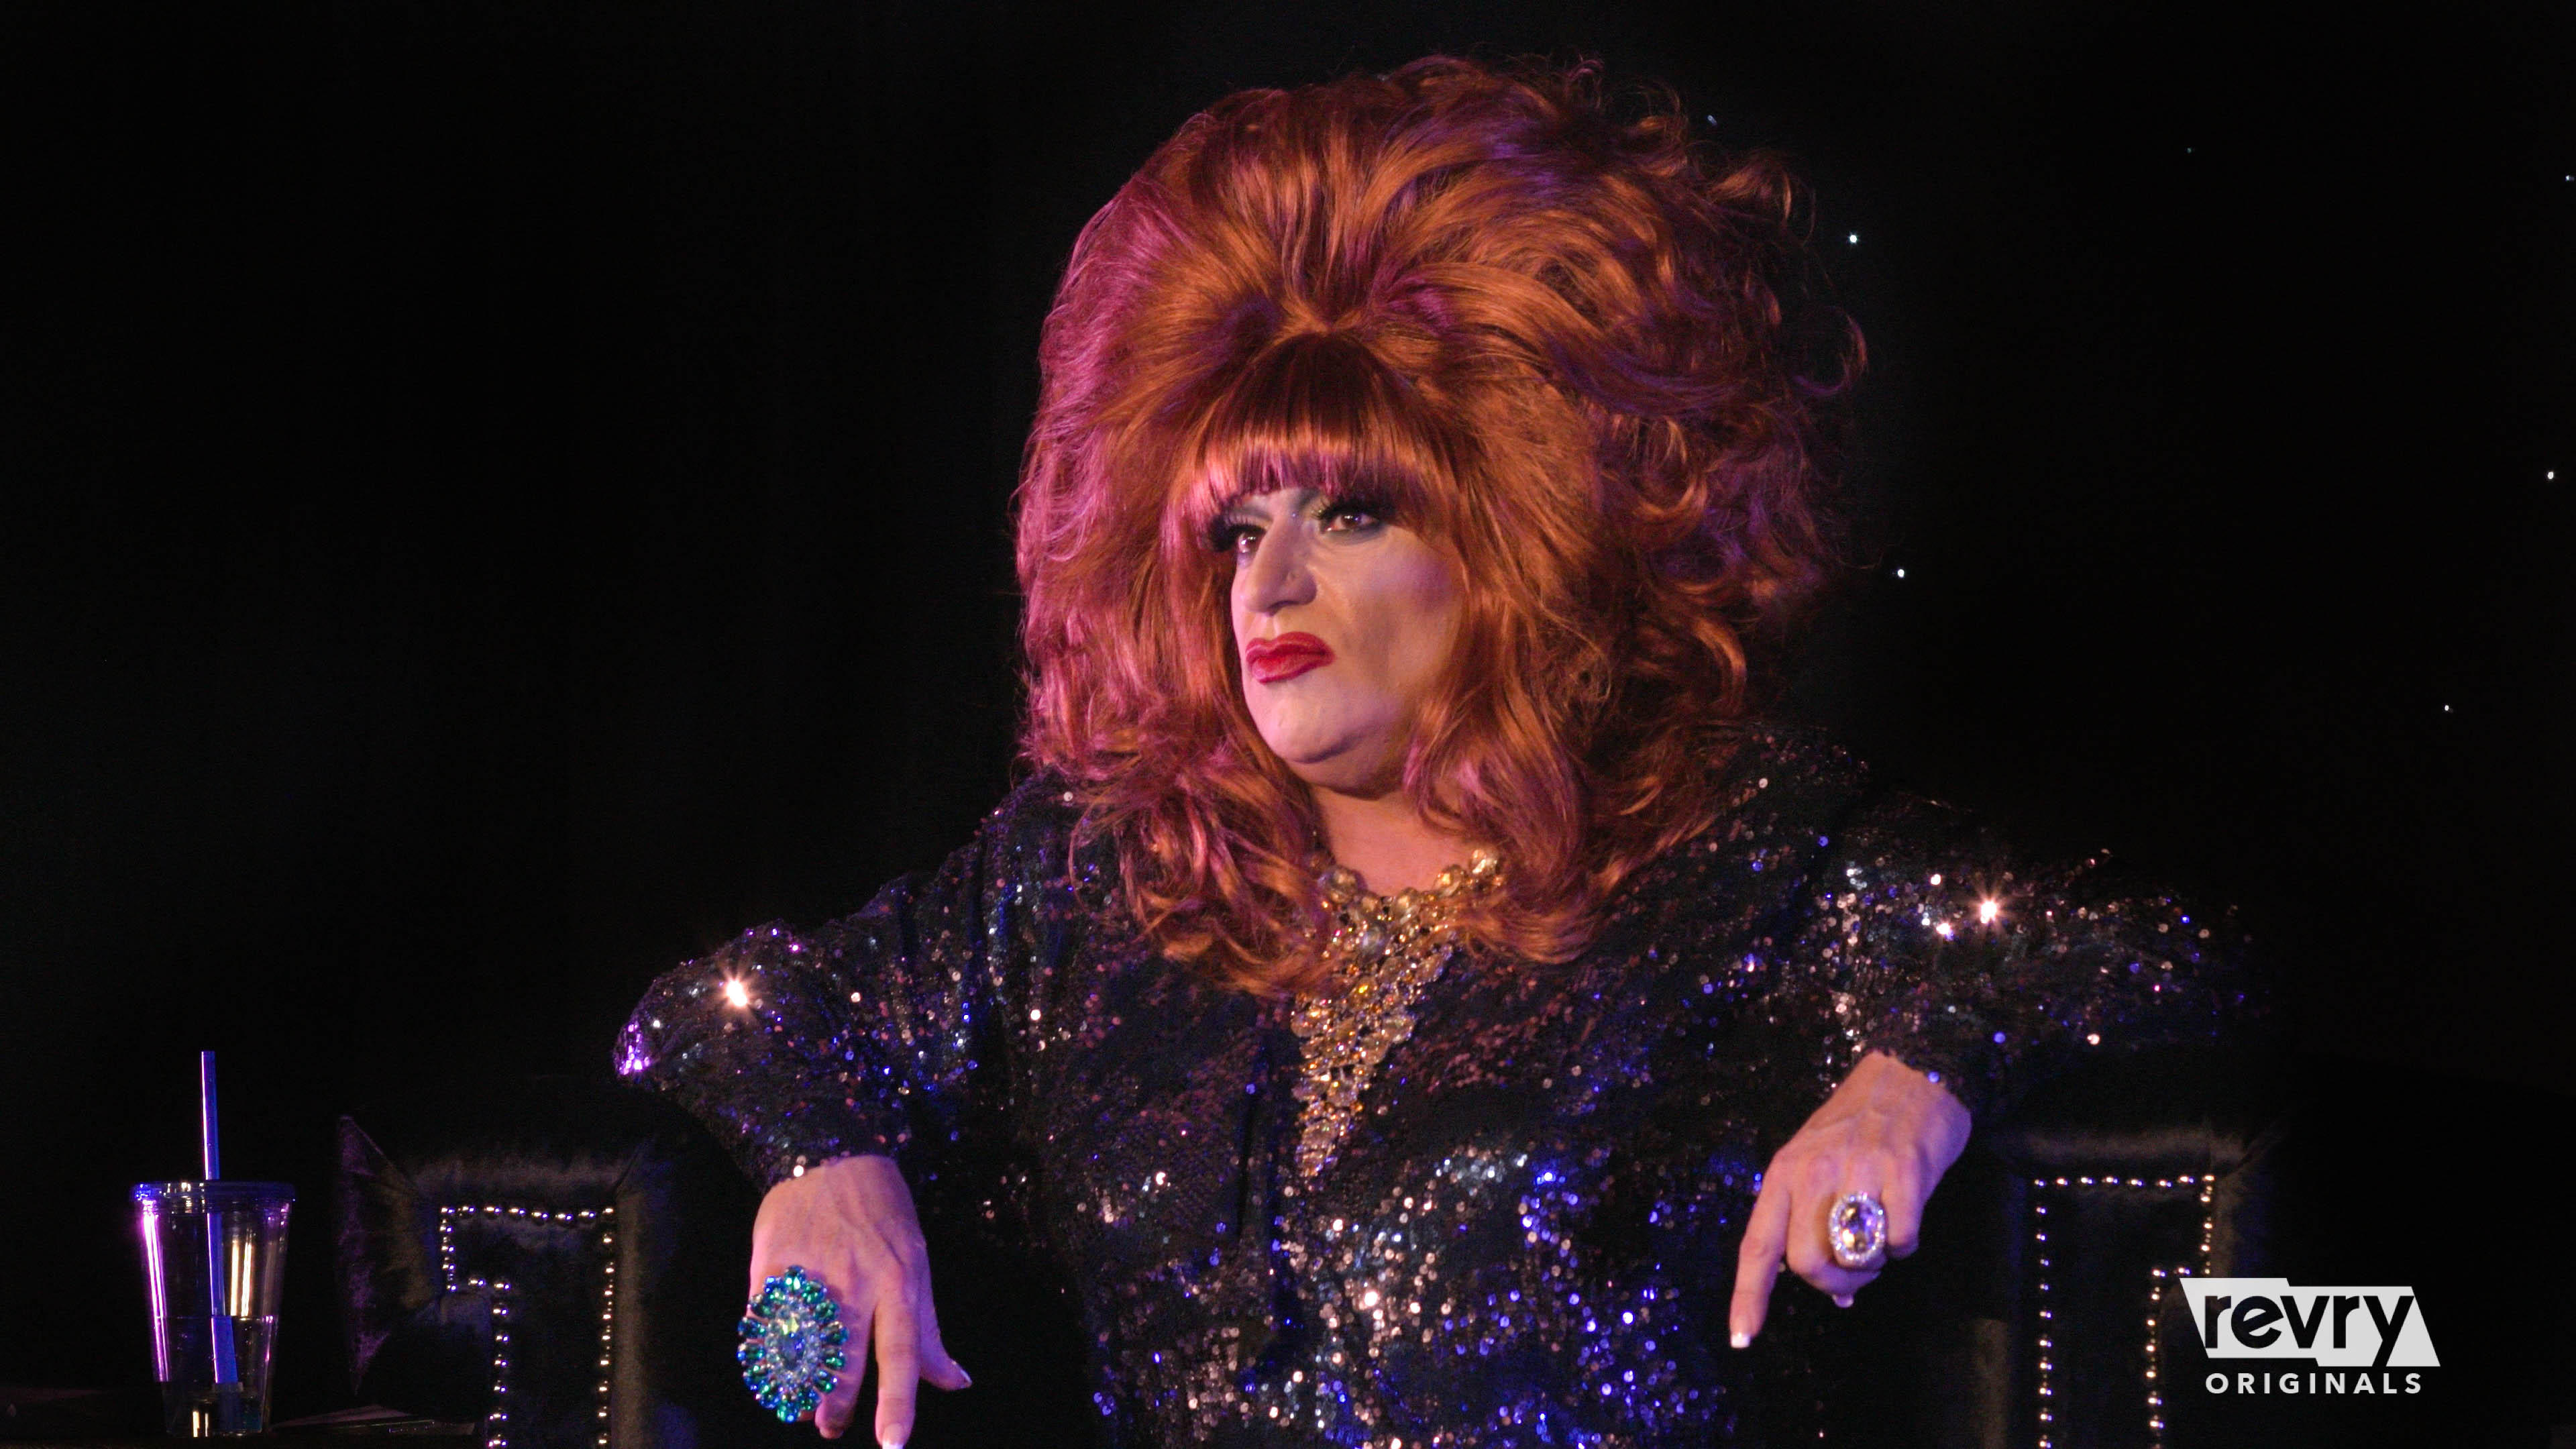 Heklina is one of the revered drag queens of the country, having been in the business for over 20 years.